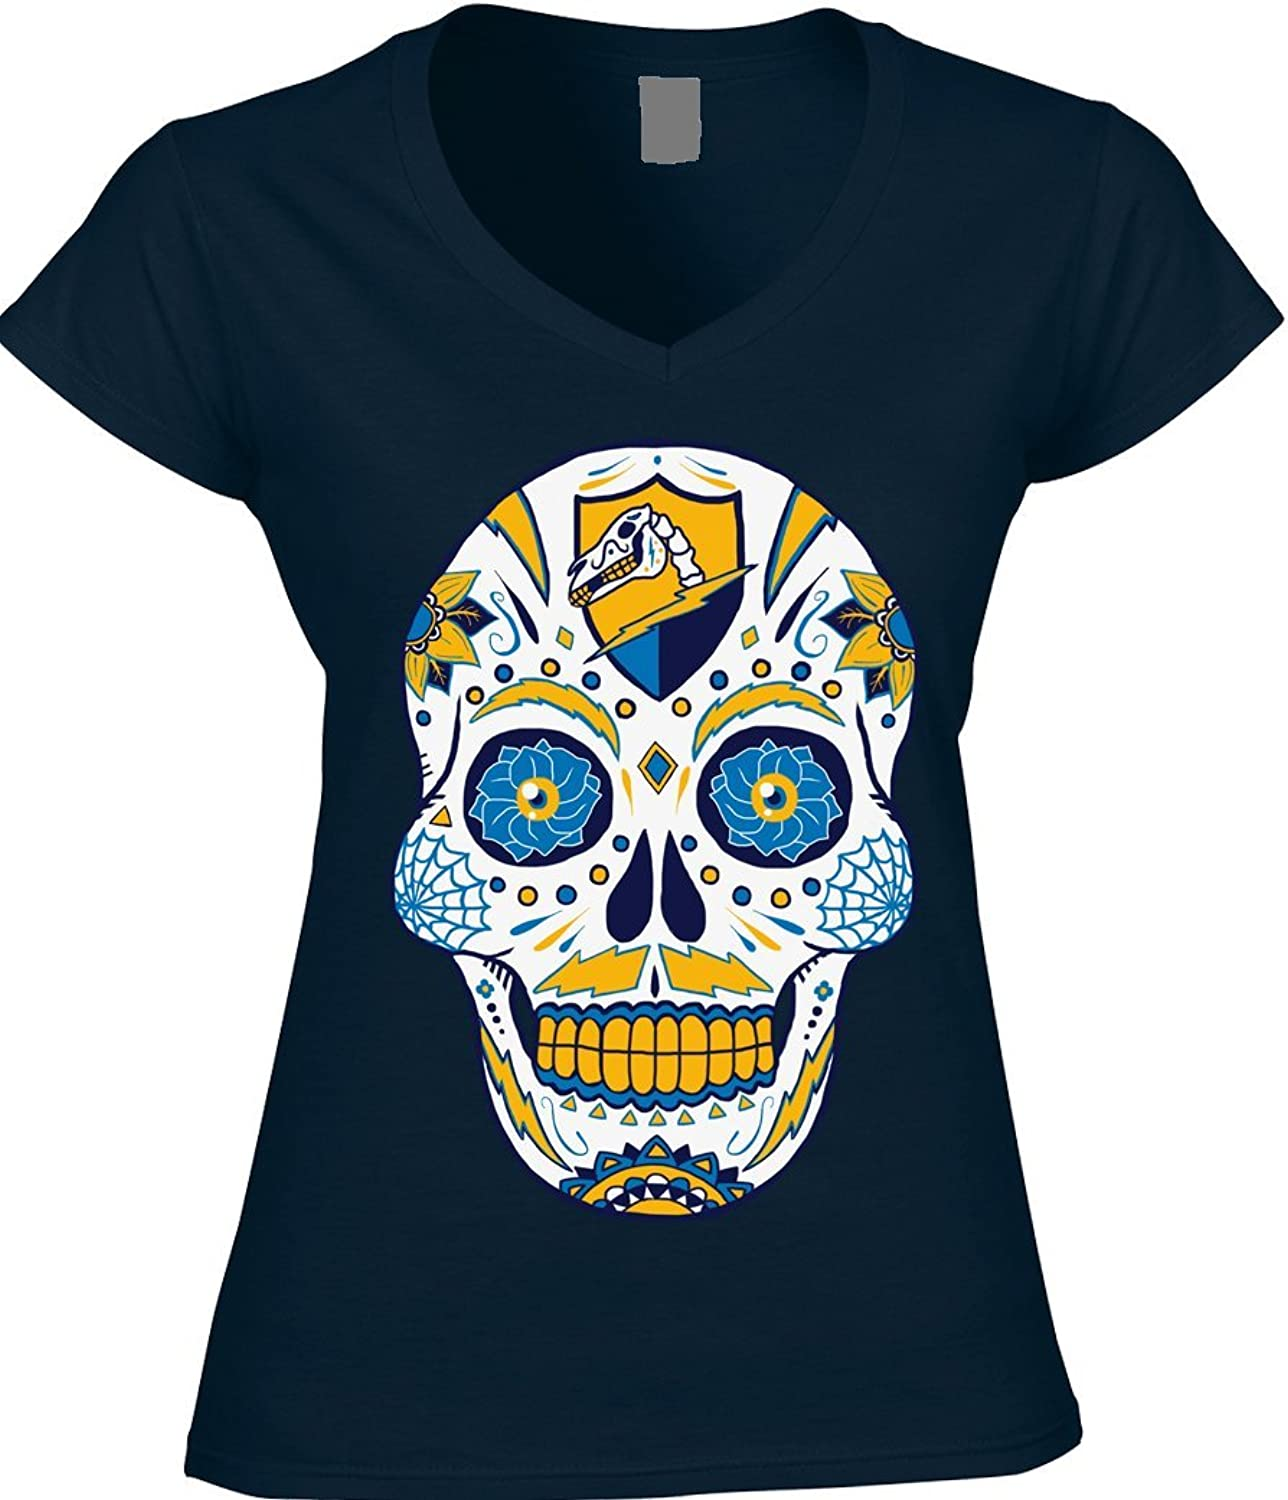 America's Finest Apparel Los Angeles Football Lac Sugar Skull Shirt  Women's